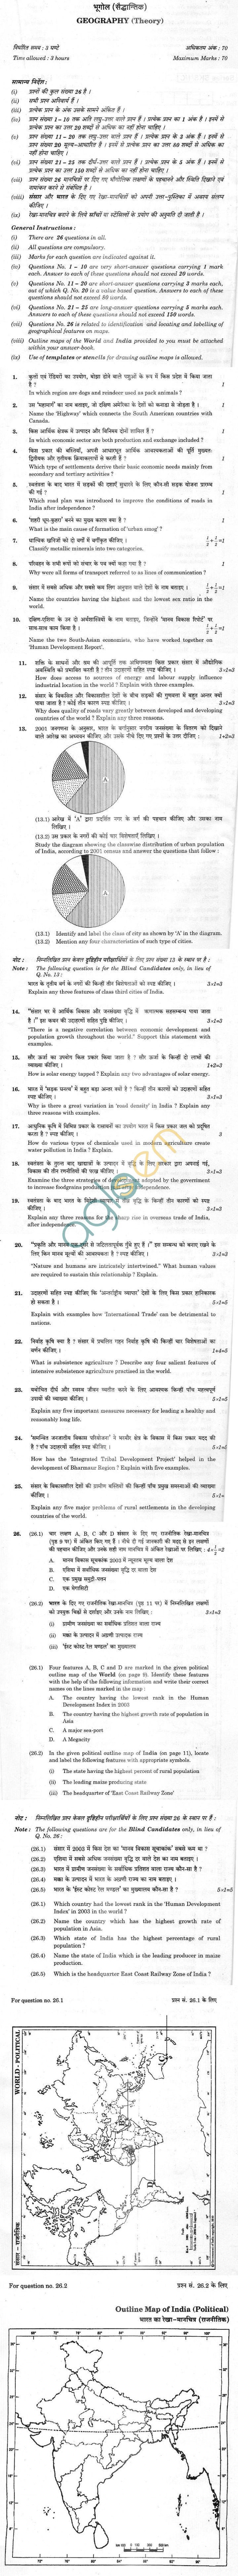 CBSE Board Exam 2014 Class 12 Sample Question Paper - Geography